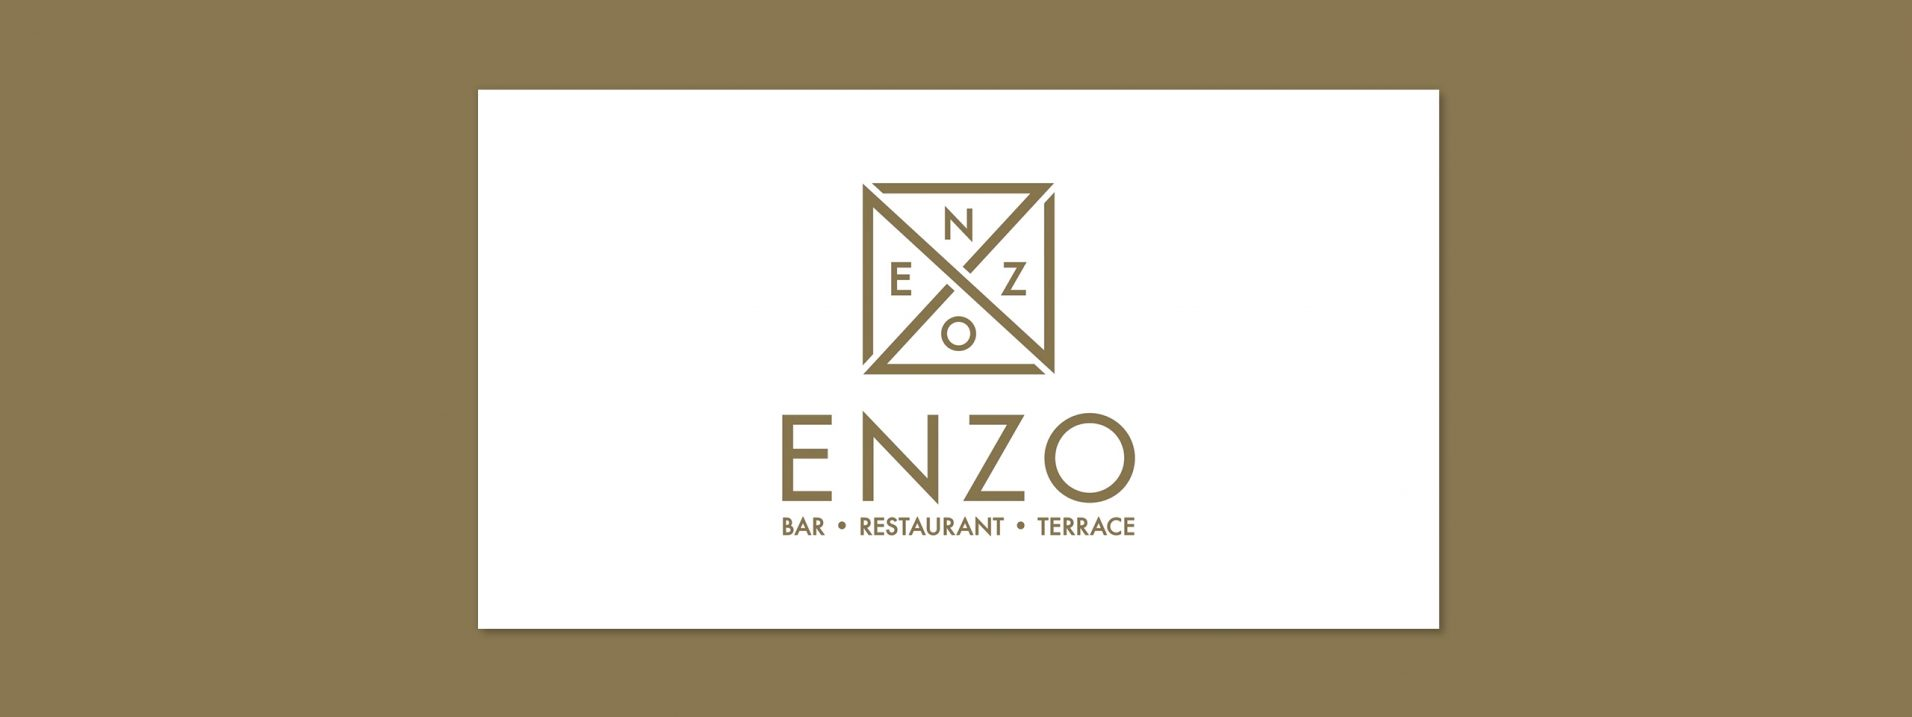 motion design for Enzo designed by Dephined